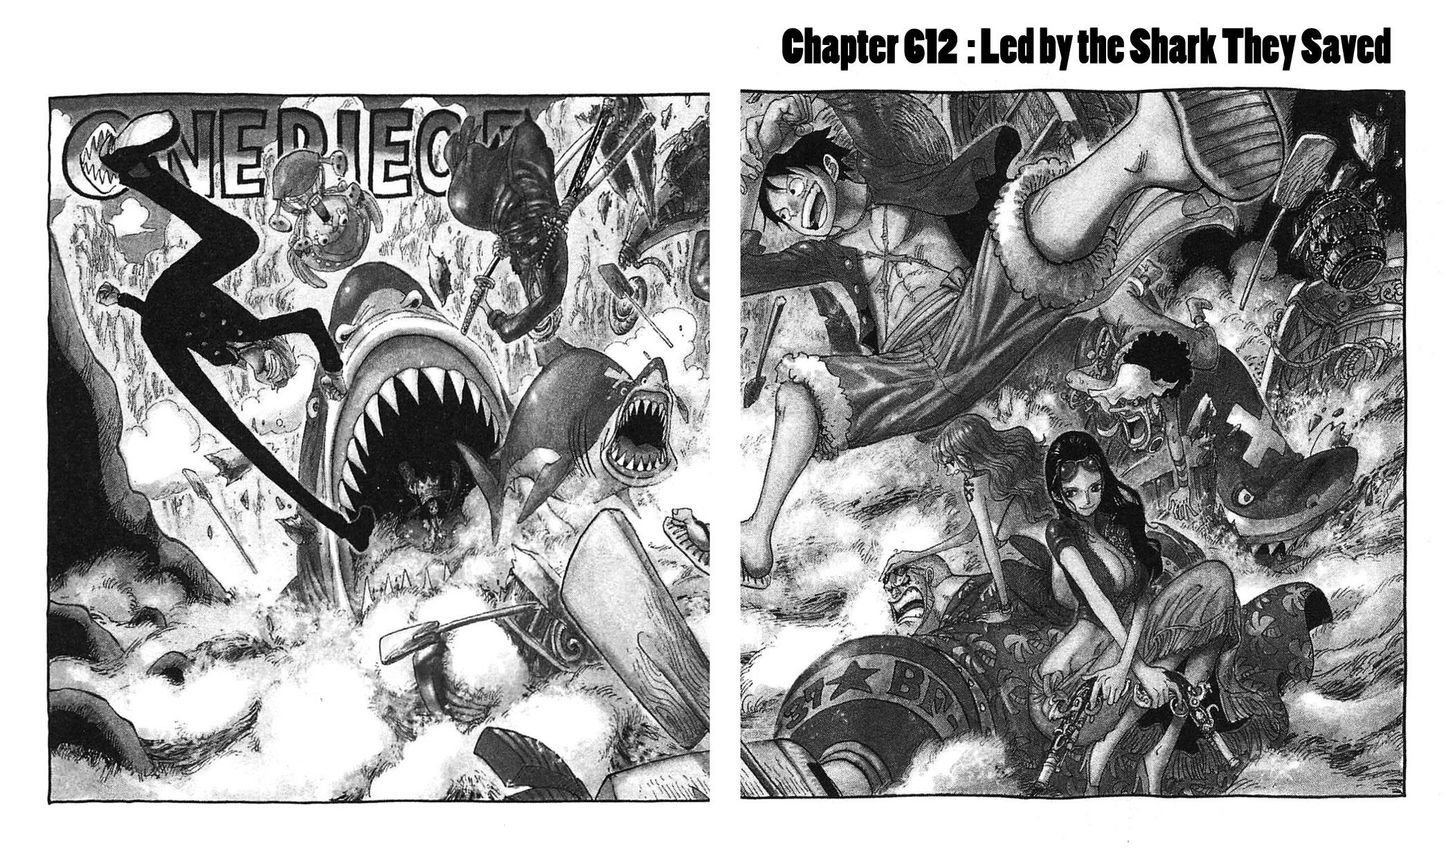 https://im.nineanime.com/comics/pic9/32/96/2961/OnePiece6120369.jpg Page 1